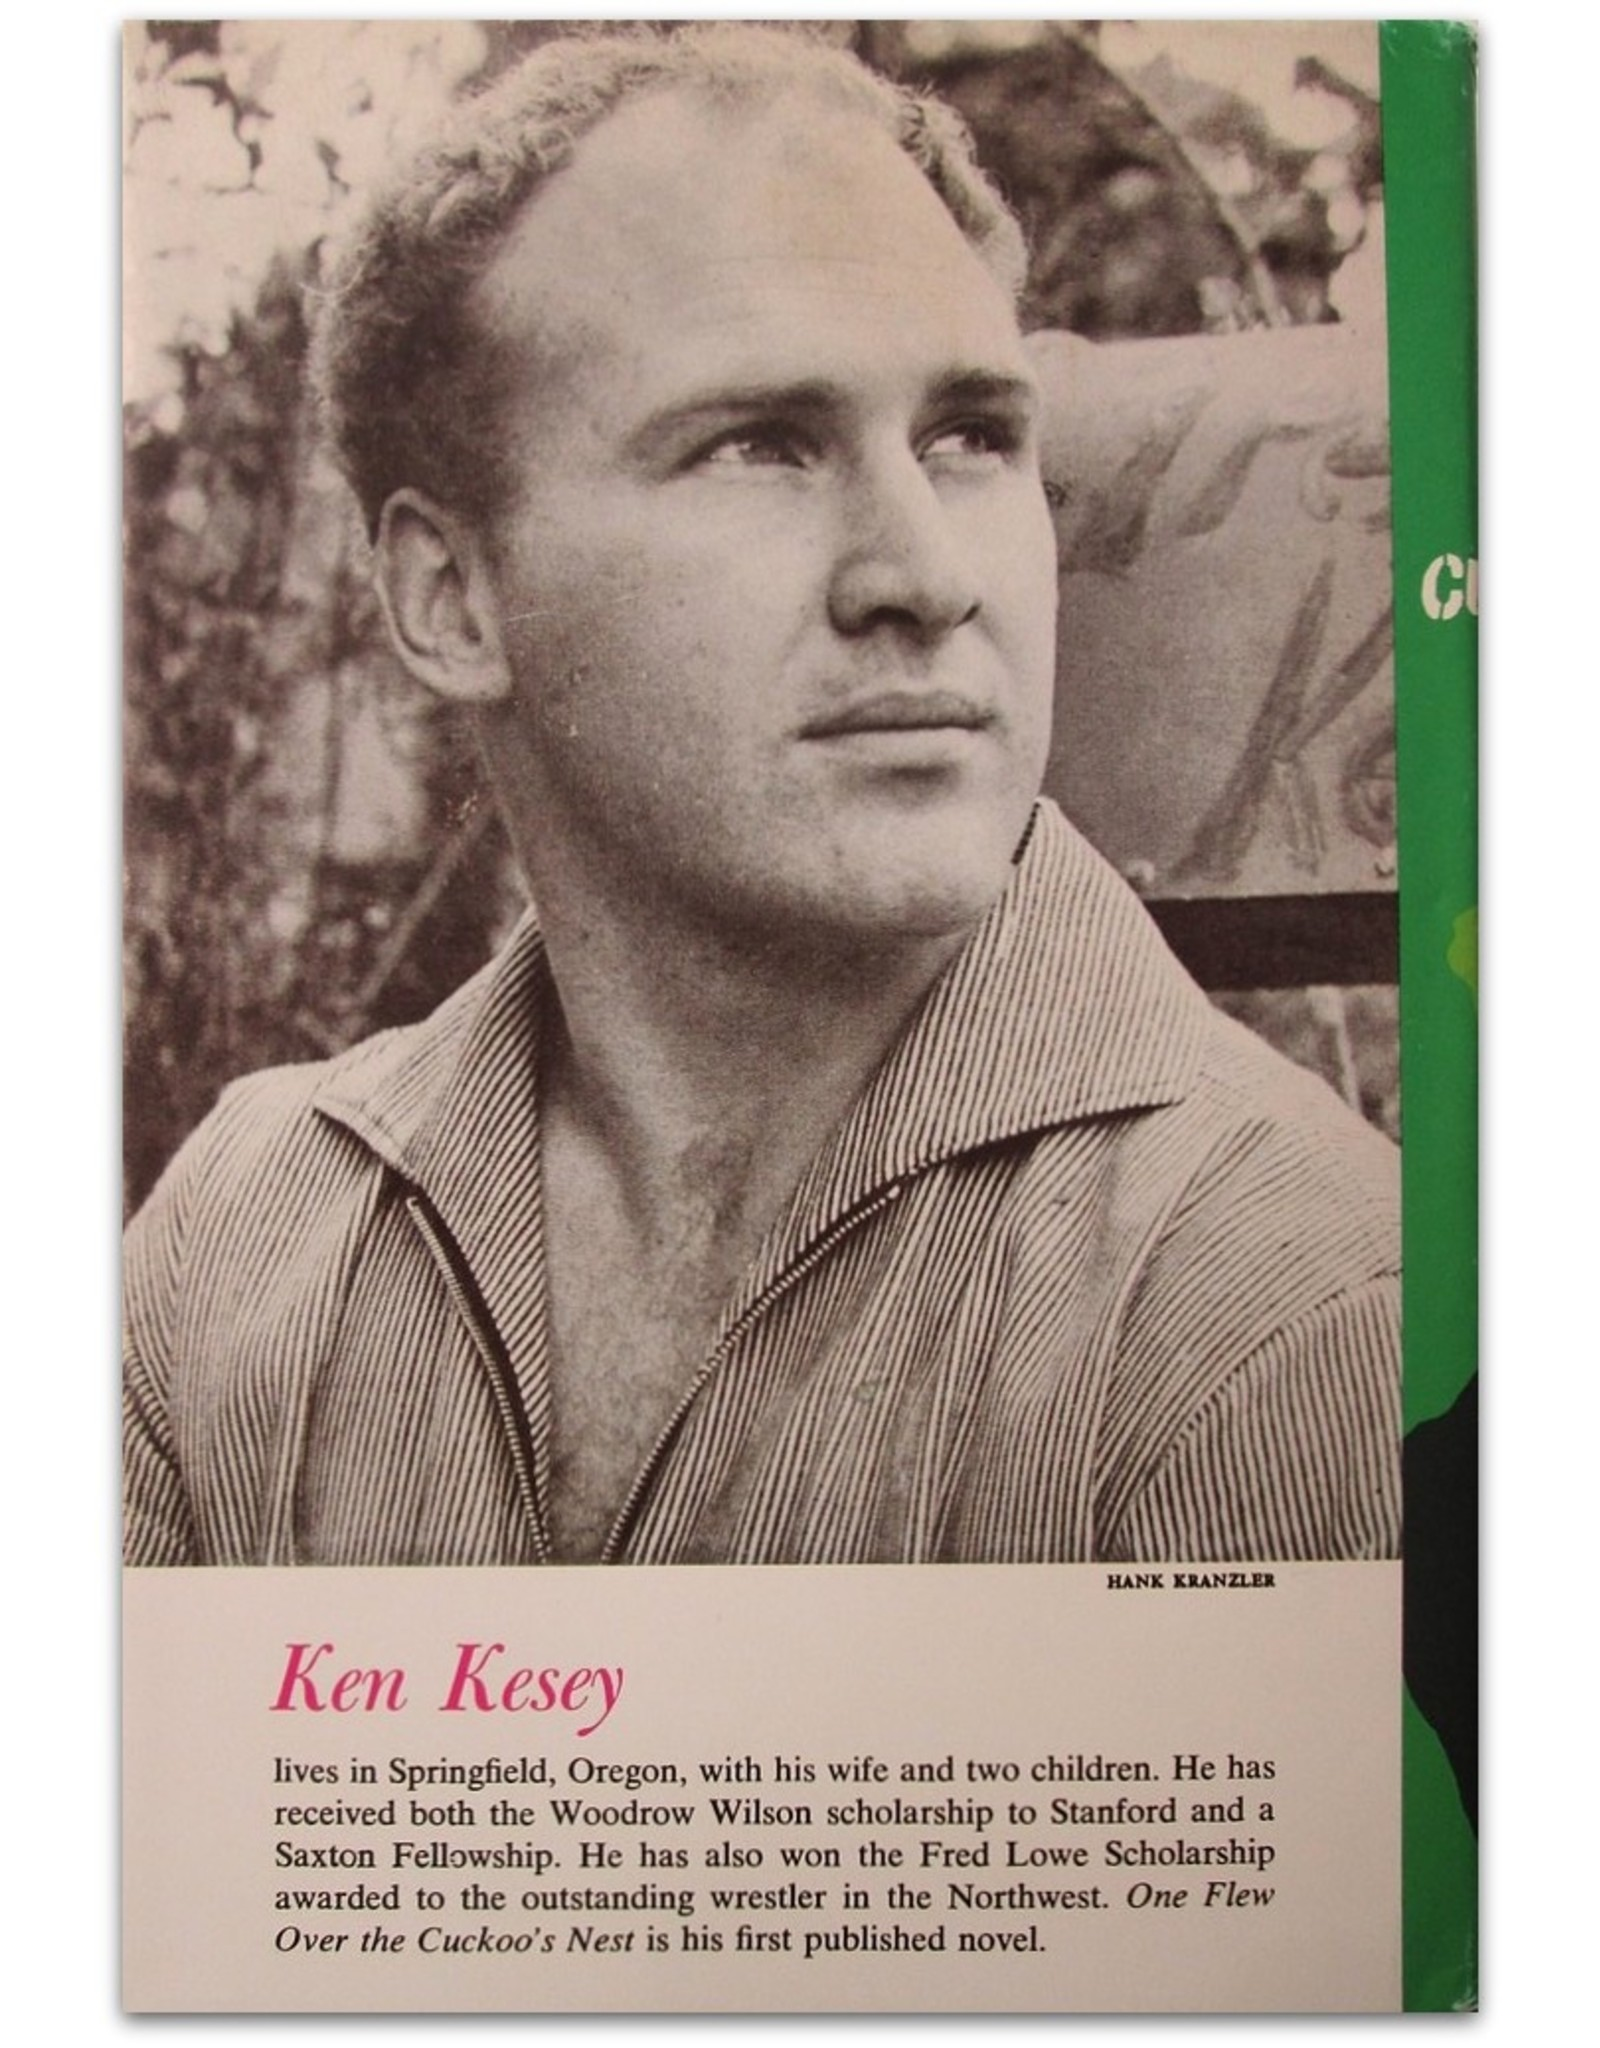 Ken Kesey - One flew over the Cuckoo's Nest - A Novel